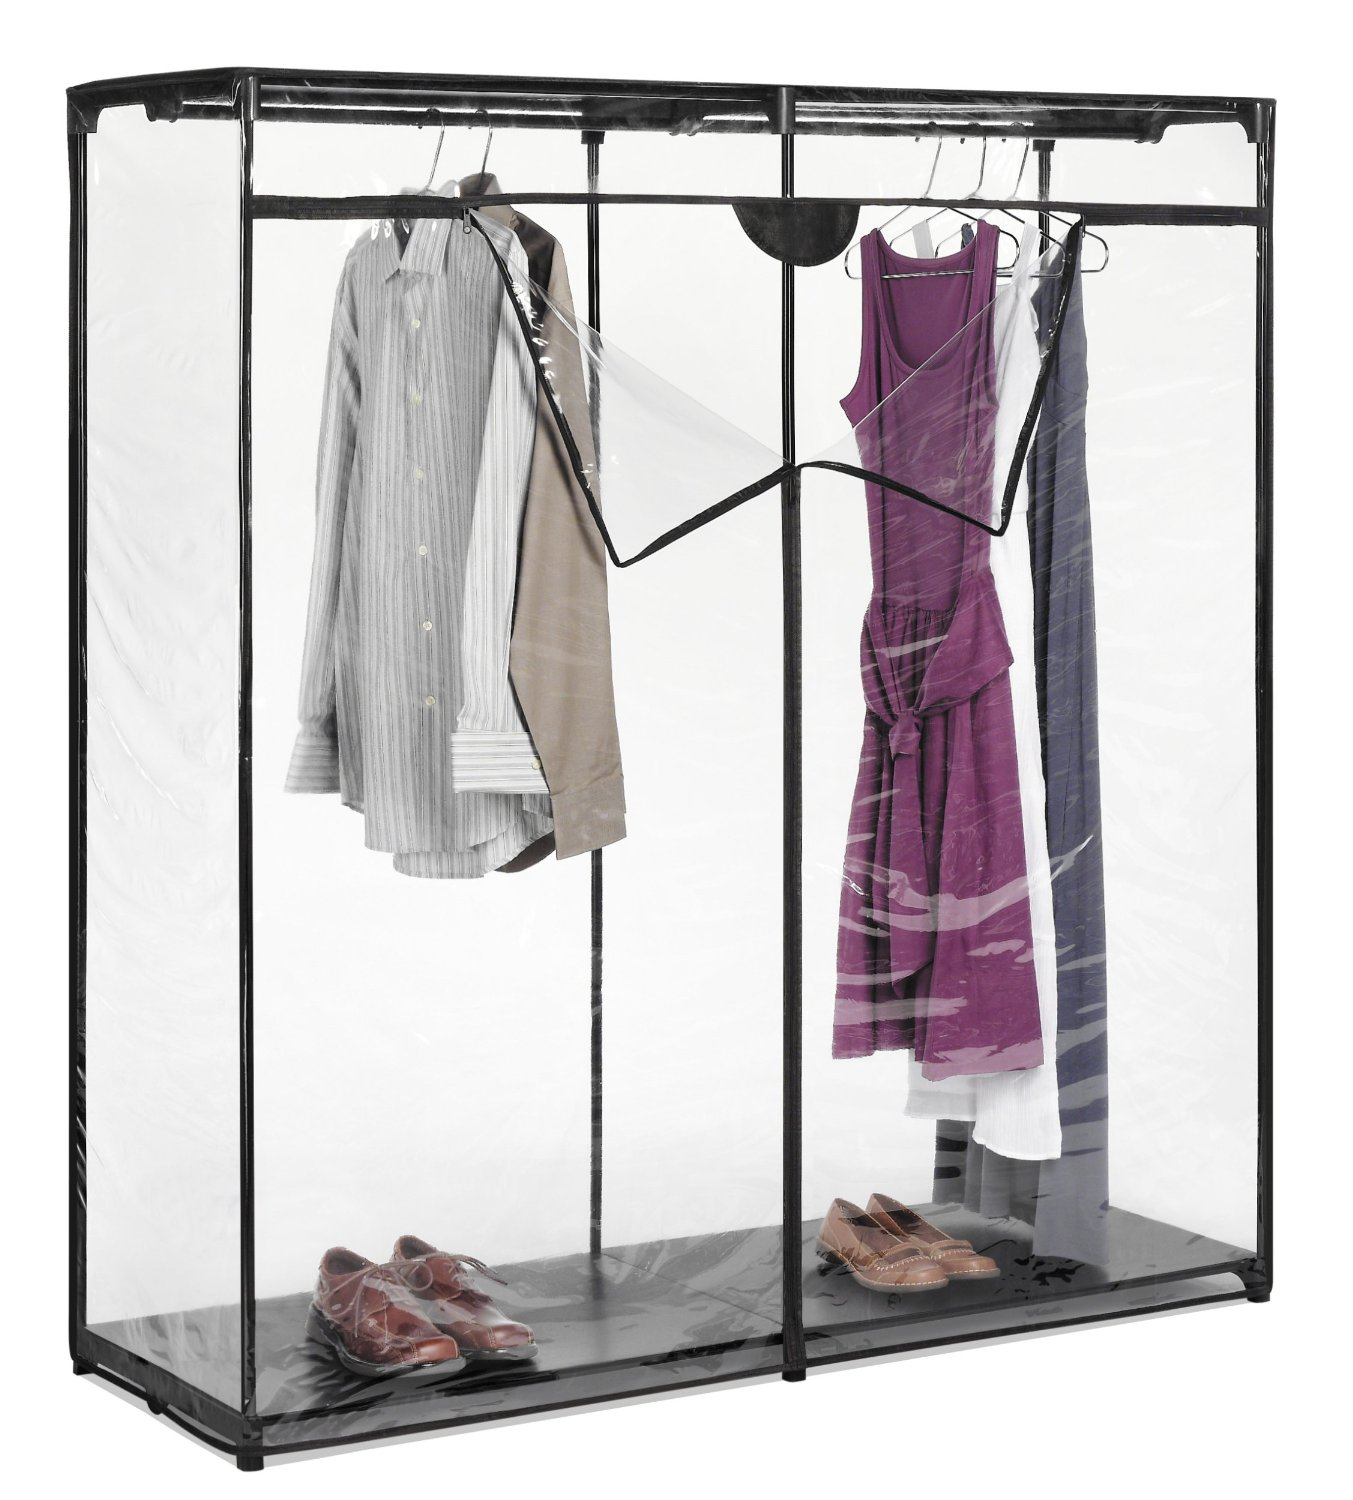 Free Standing Wardrobe Closets   Armoire Wardrobe Storage Cabinet   Free Standing Closet Wardrobe